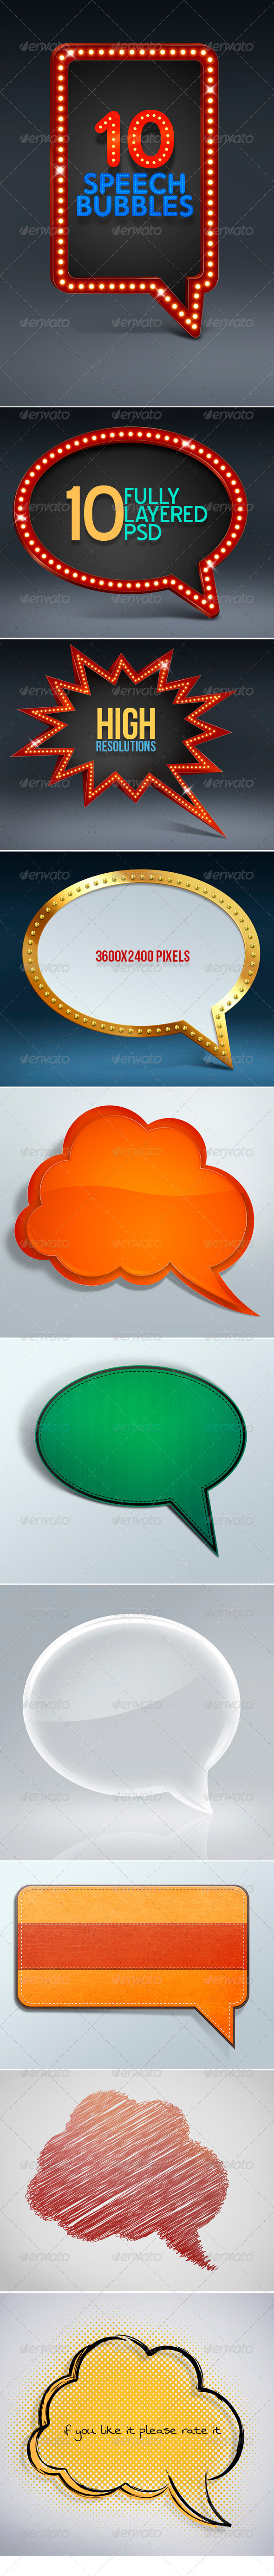 GraphicRiver 10 Speech Bubbles 3512338